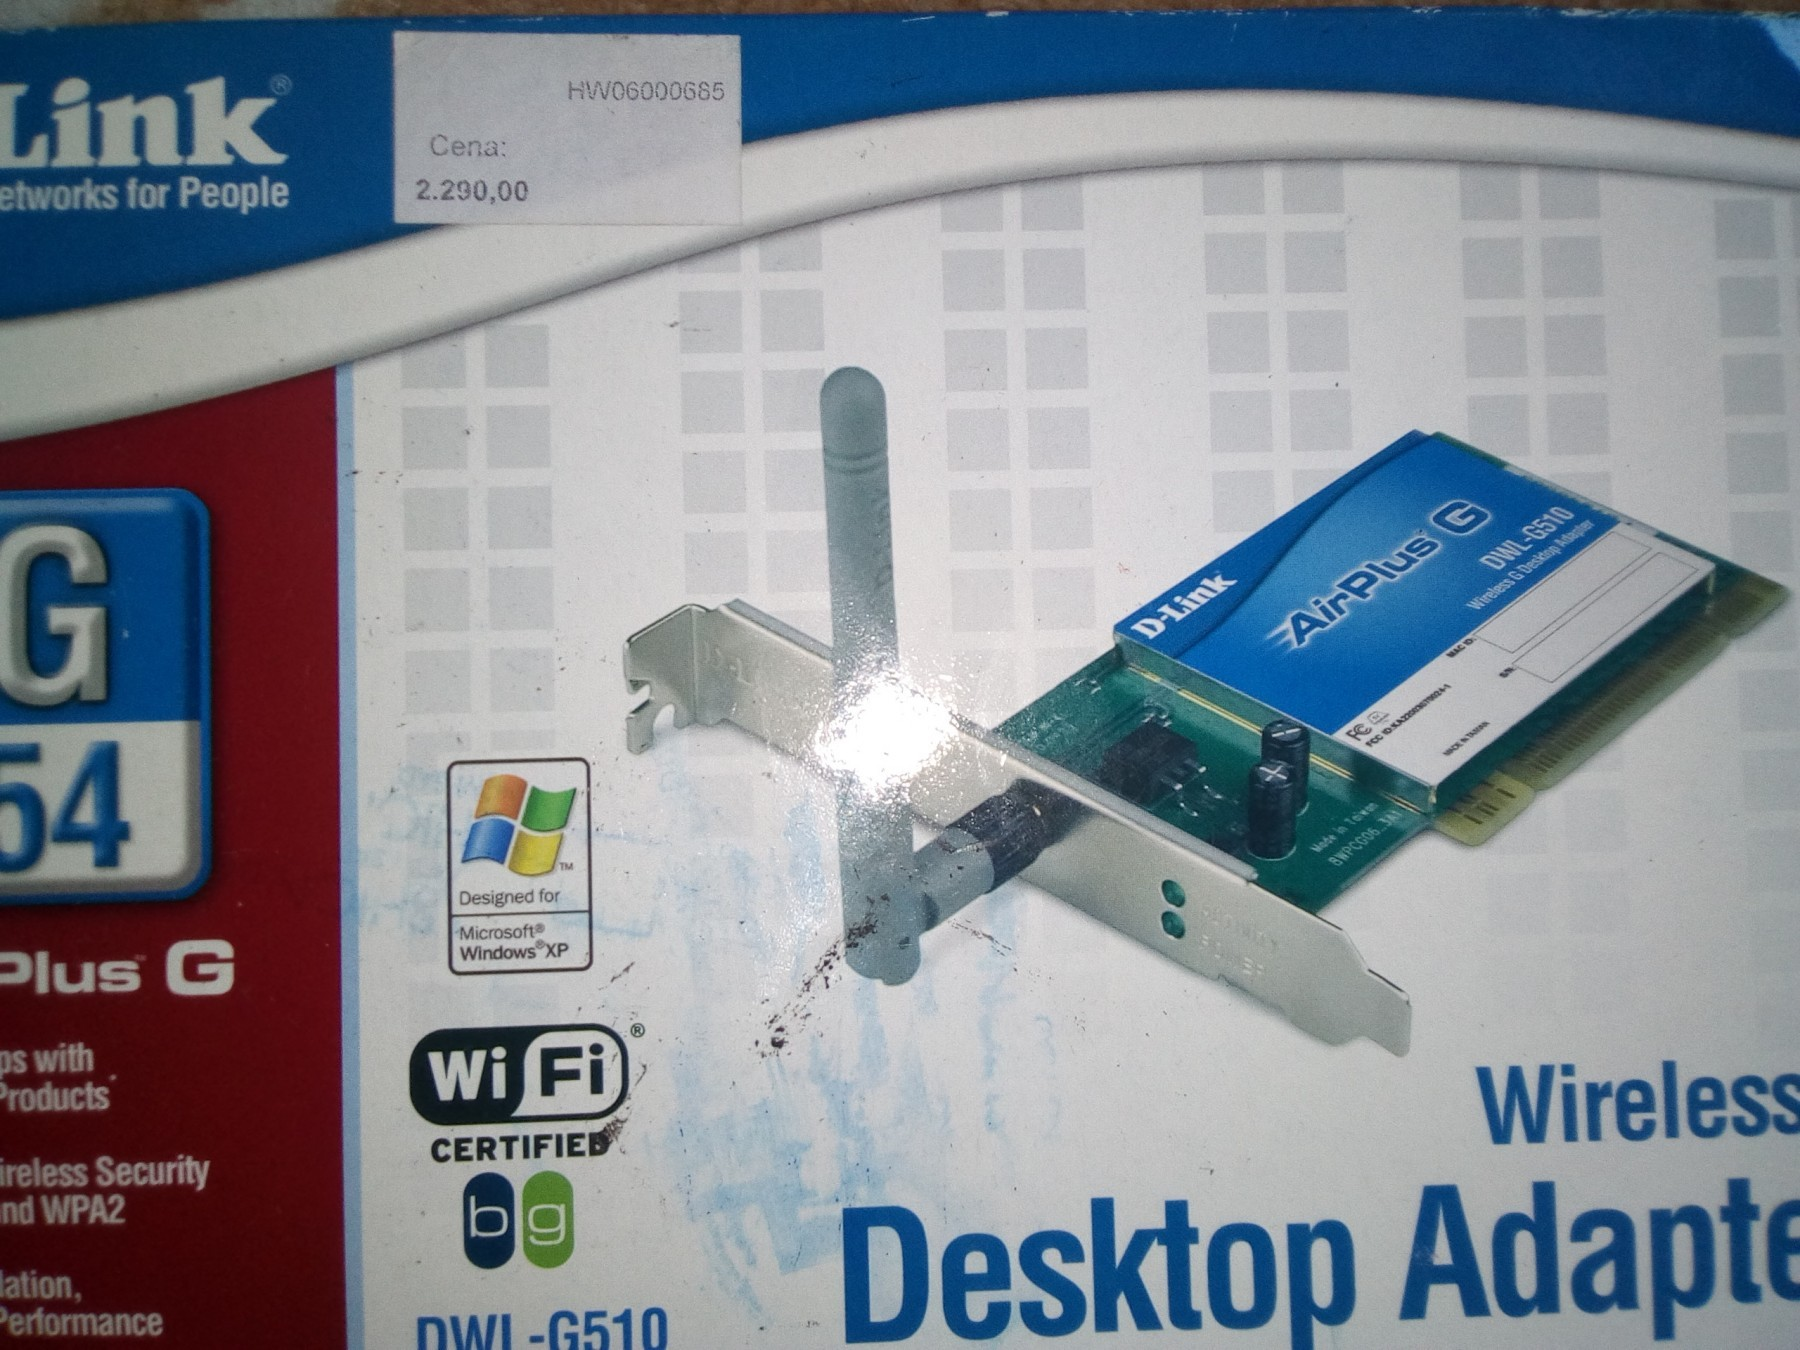 D-LINK WIRELESS ADAPTER DWL-G510 DRIVERS FOR WINDOWS XP